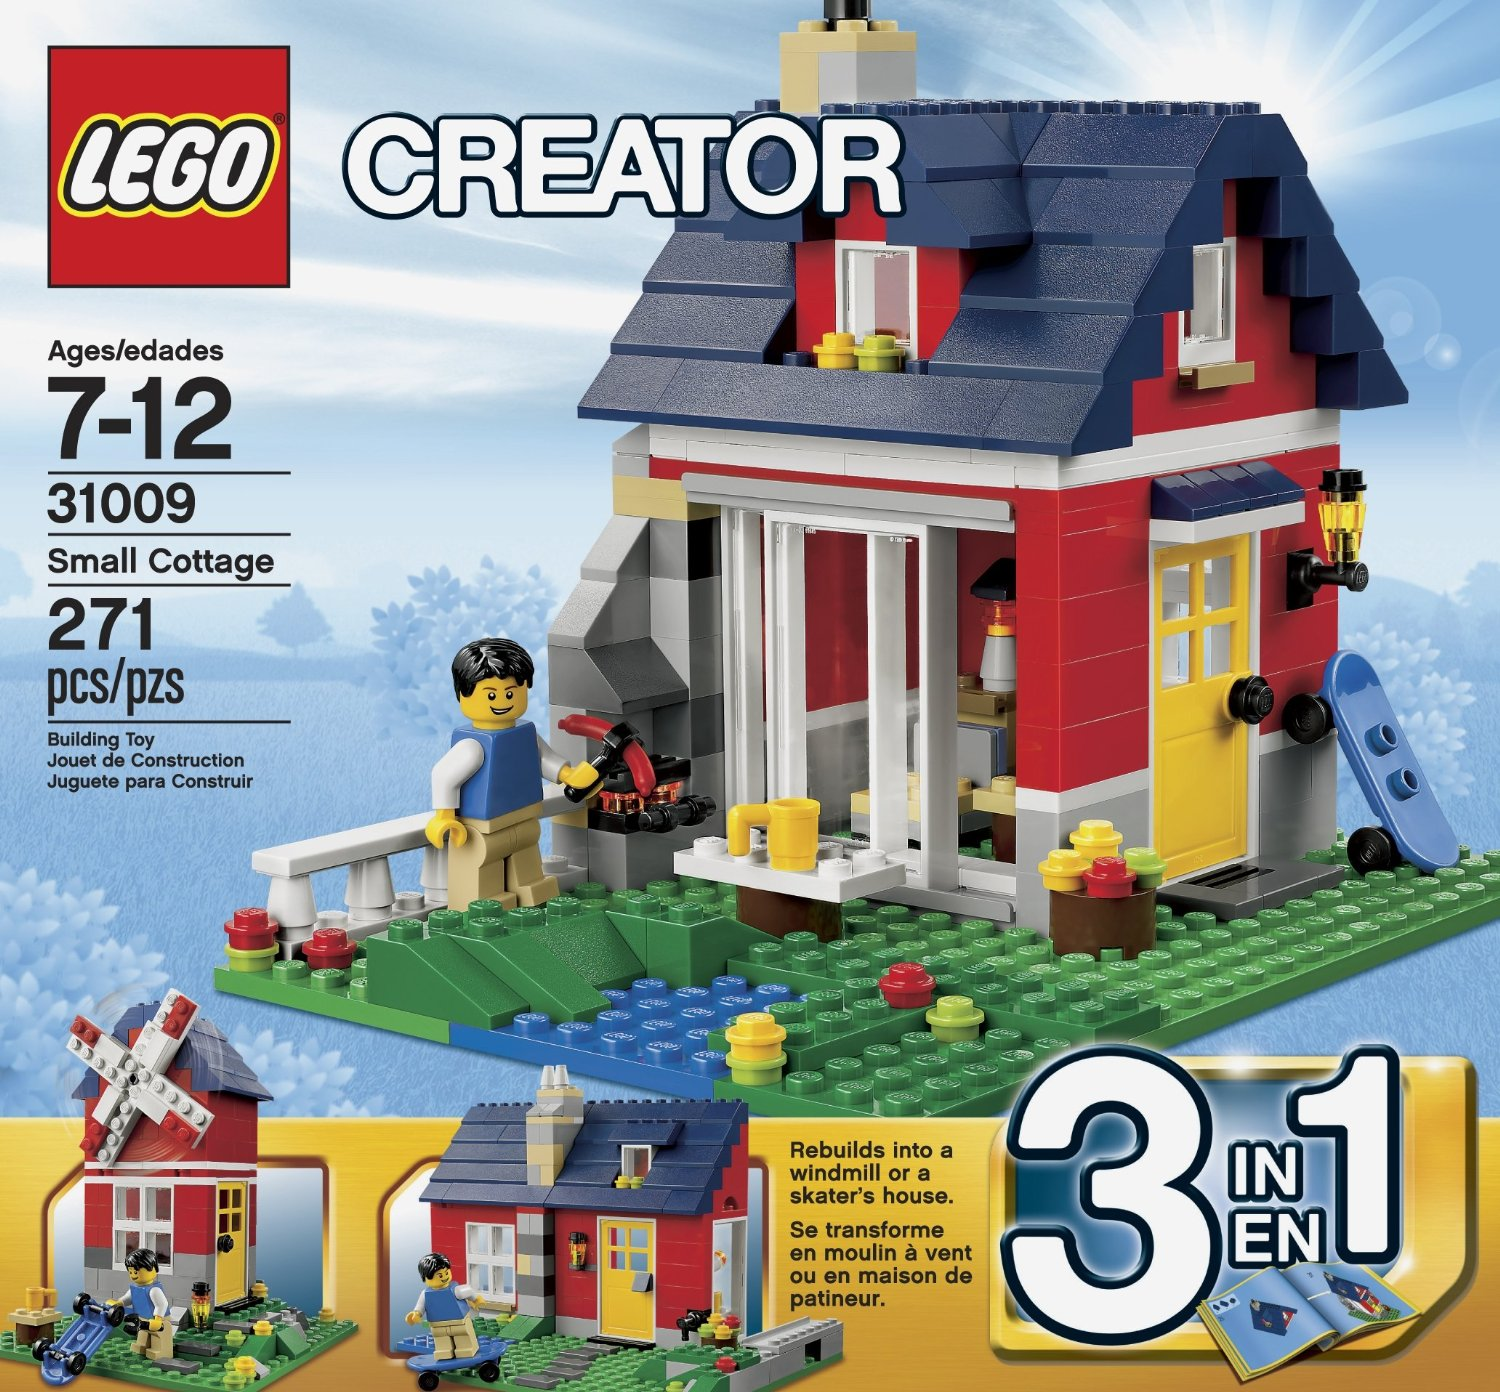 Small Small Small Lego Creator Cottage Cottage Lego Lego Creator Creator mvNwnO80